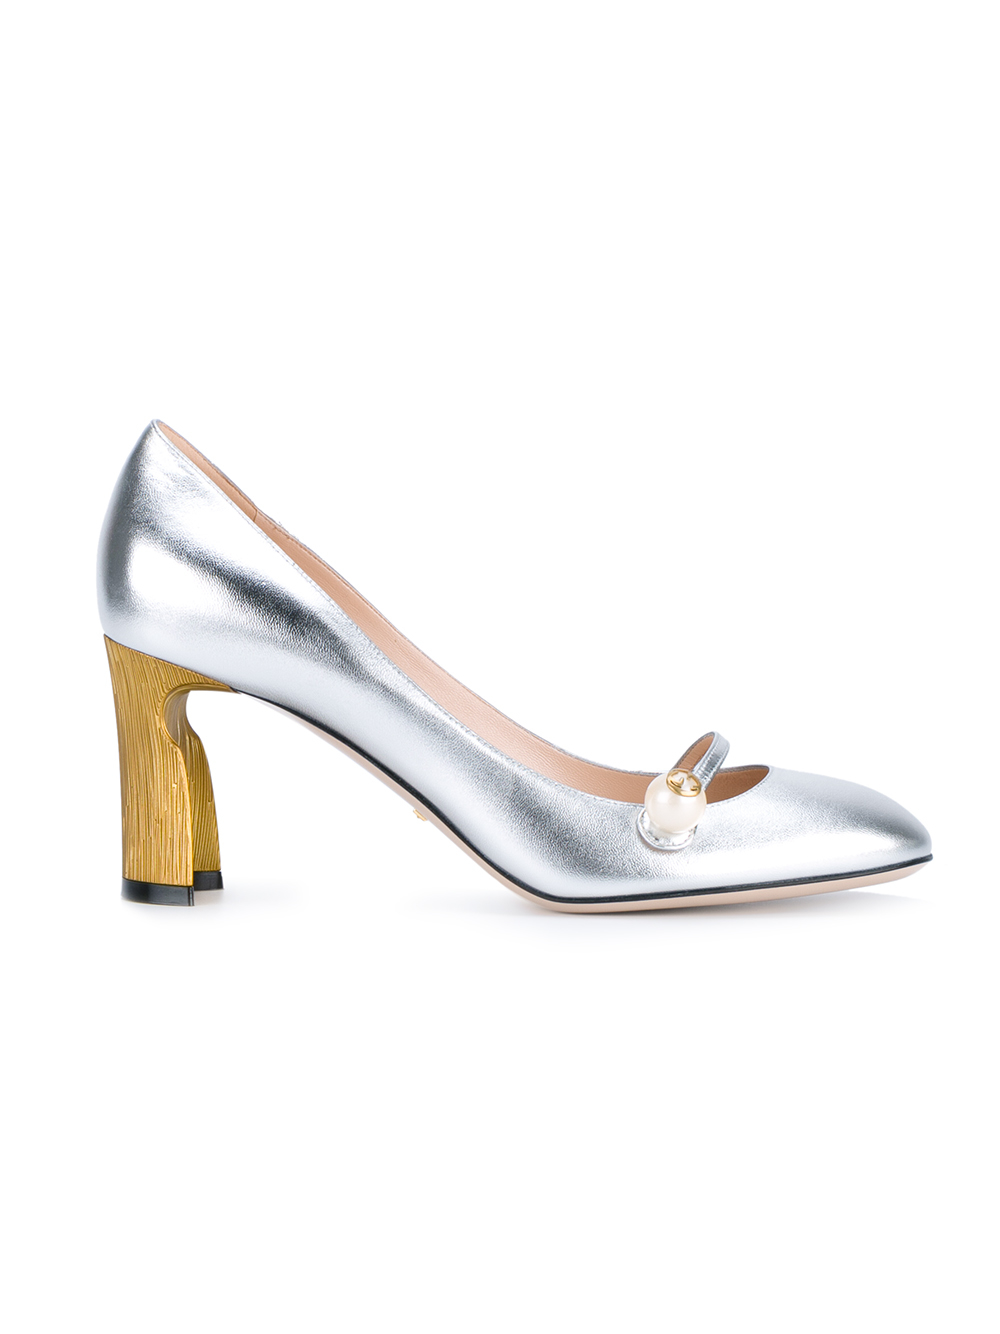 Gucci Patent Leather Heels OF89f